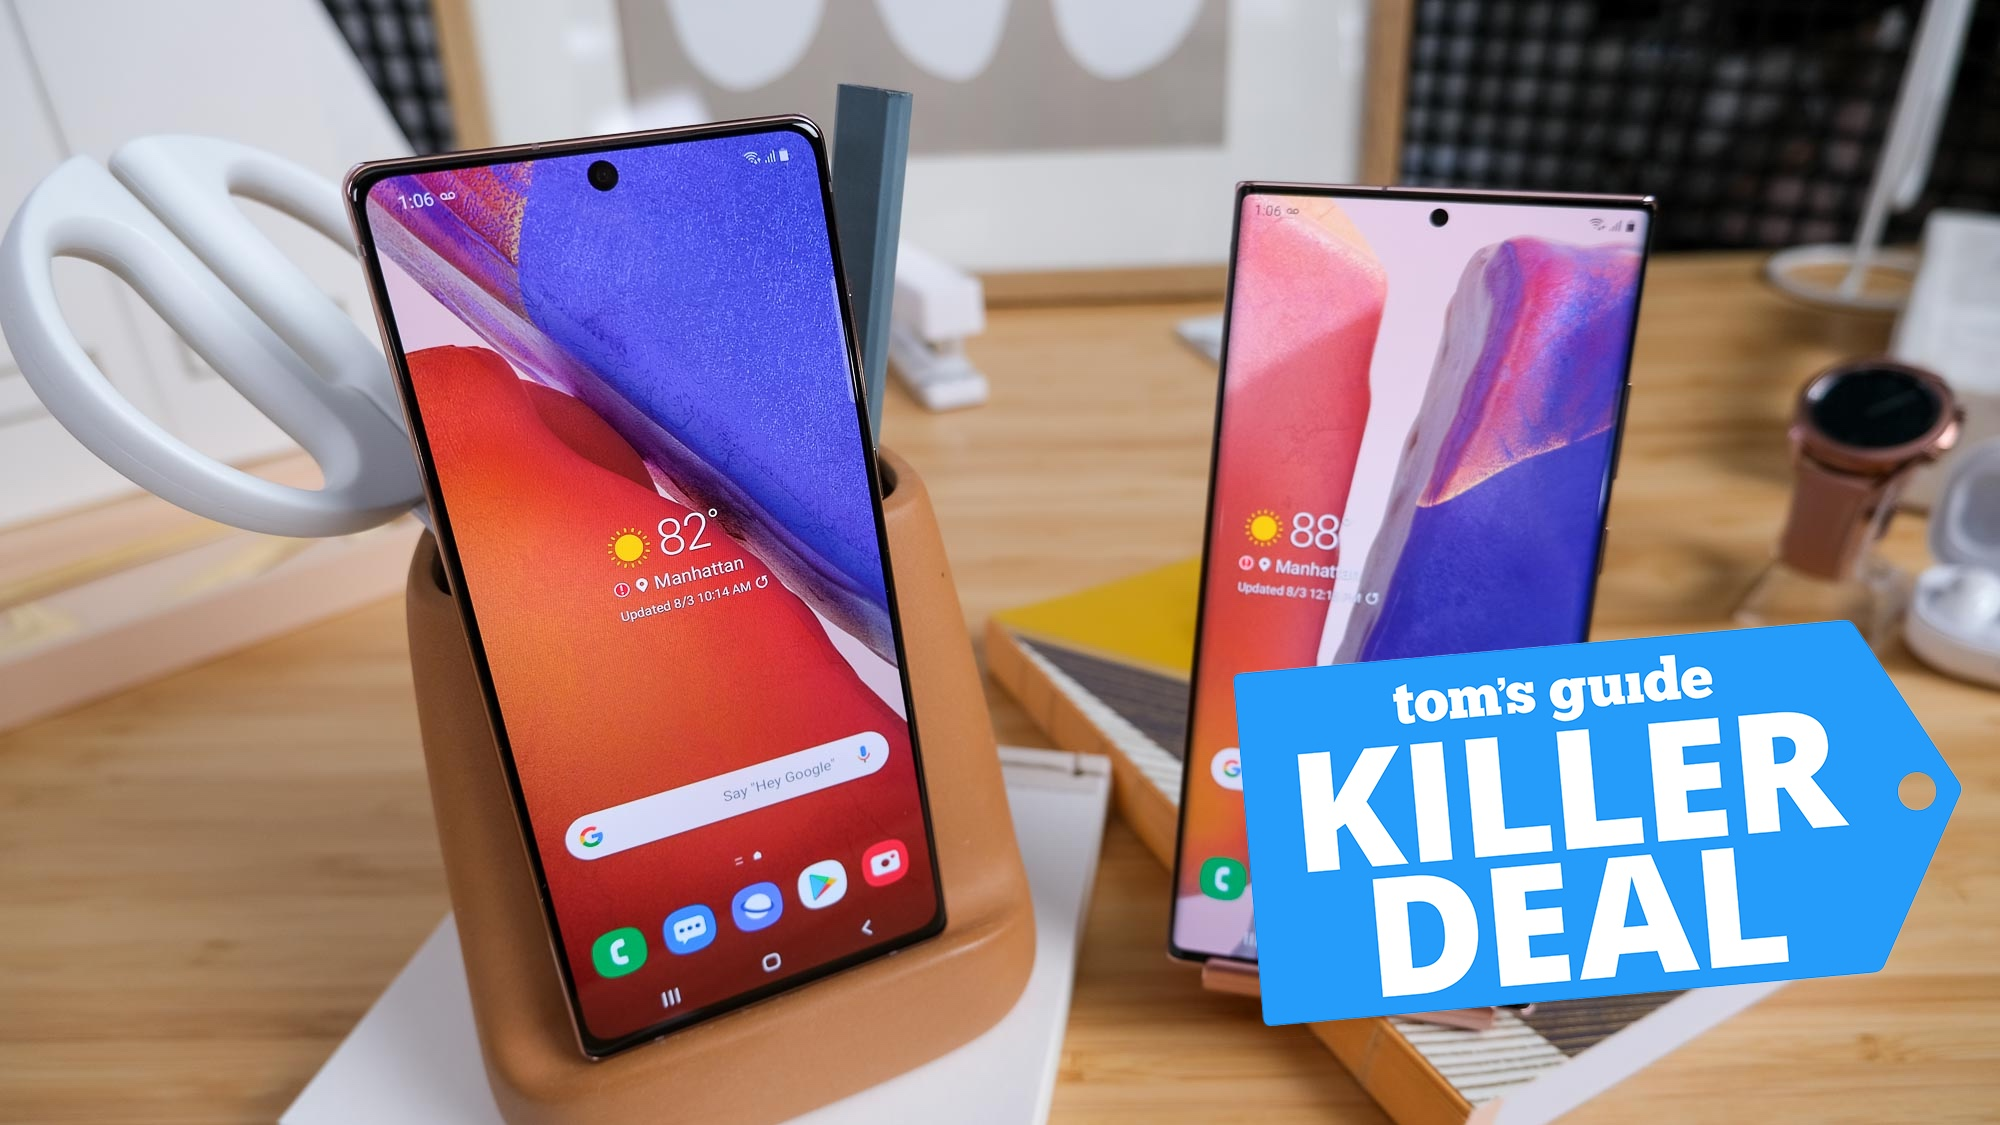 Samsung Phones For Verizon On Backorder For Christmas 2021 Best Samsung Phone Deals In February 2021 Tom S Guide